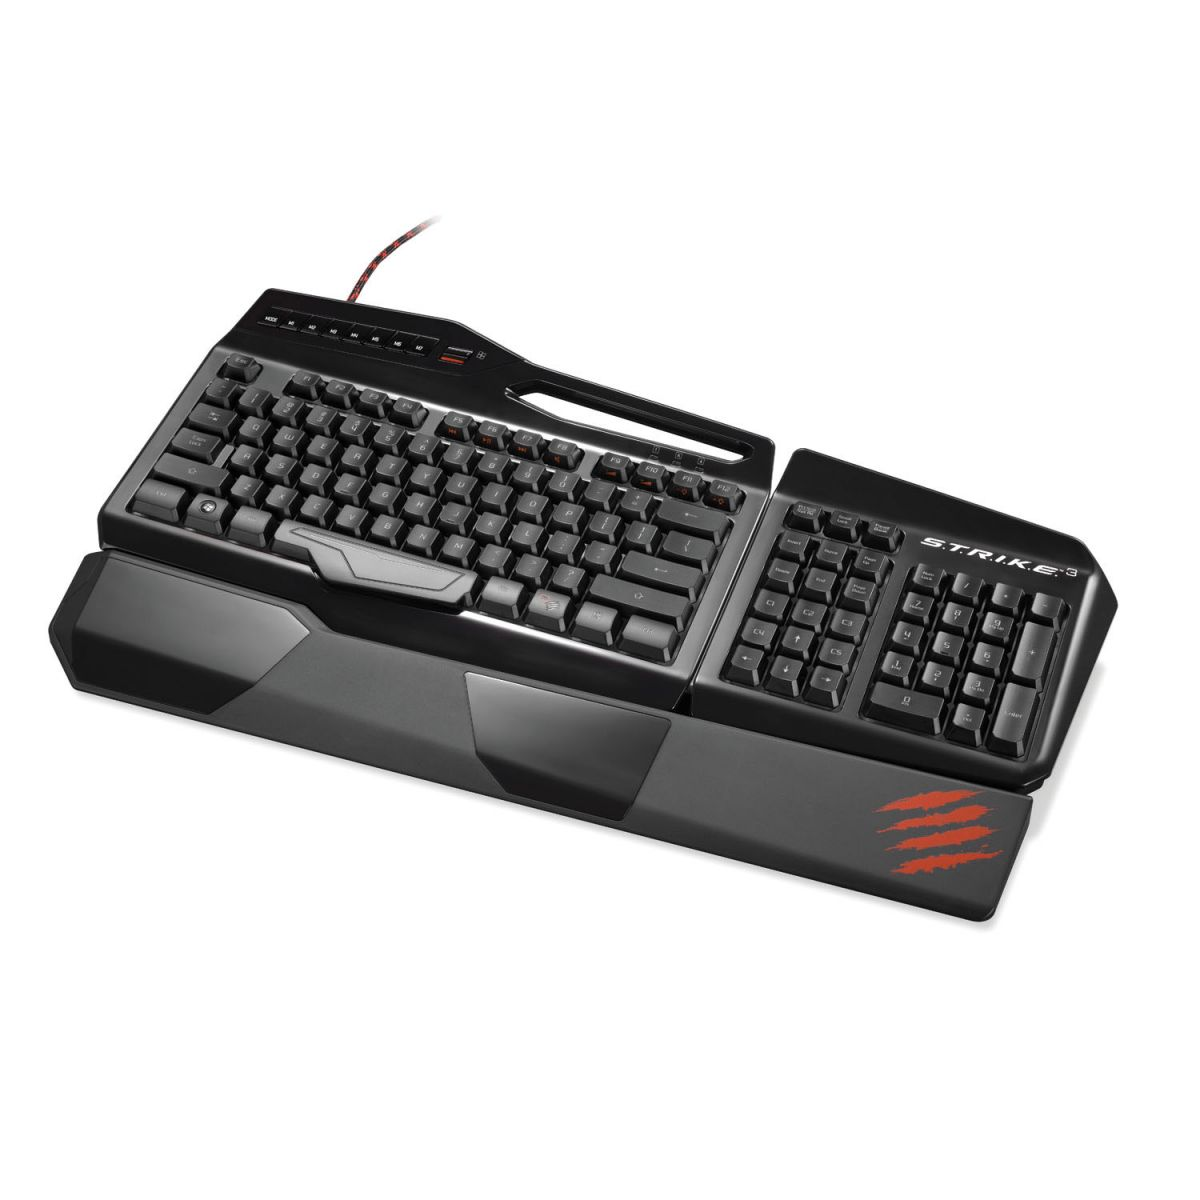 Teclado Gaming S.T.R.I.K.E 3 Gloss Black MCB43112N0C2 - Mad Catz